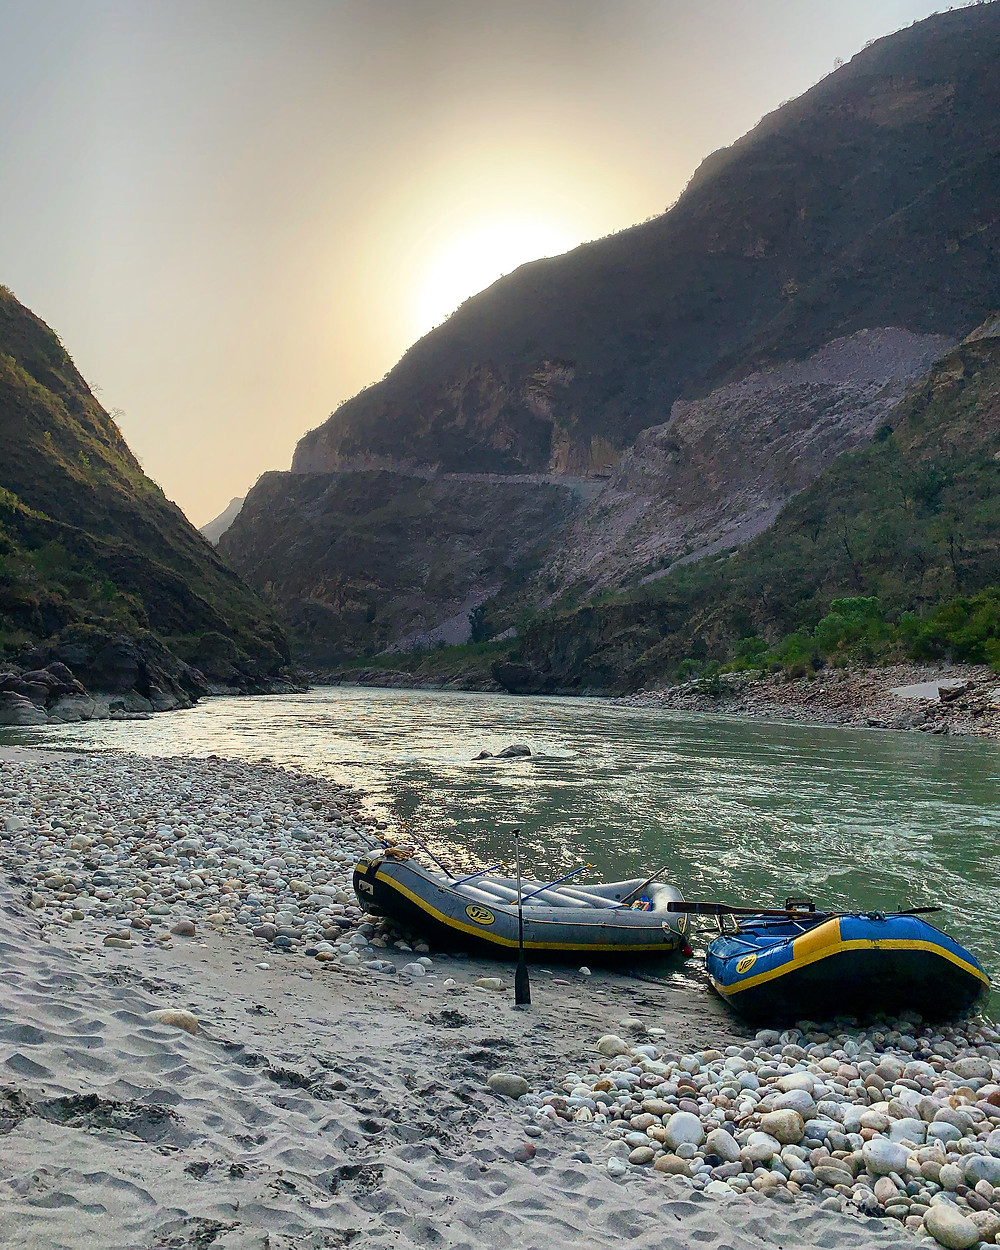 Rafting in Tattapani - Your complete guide